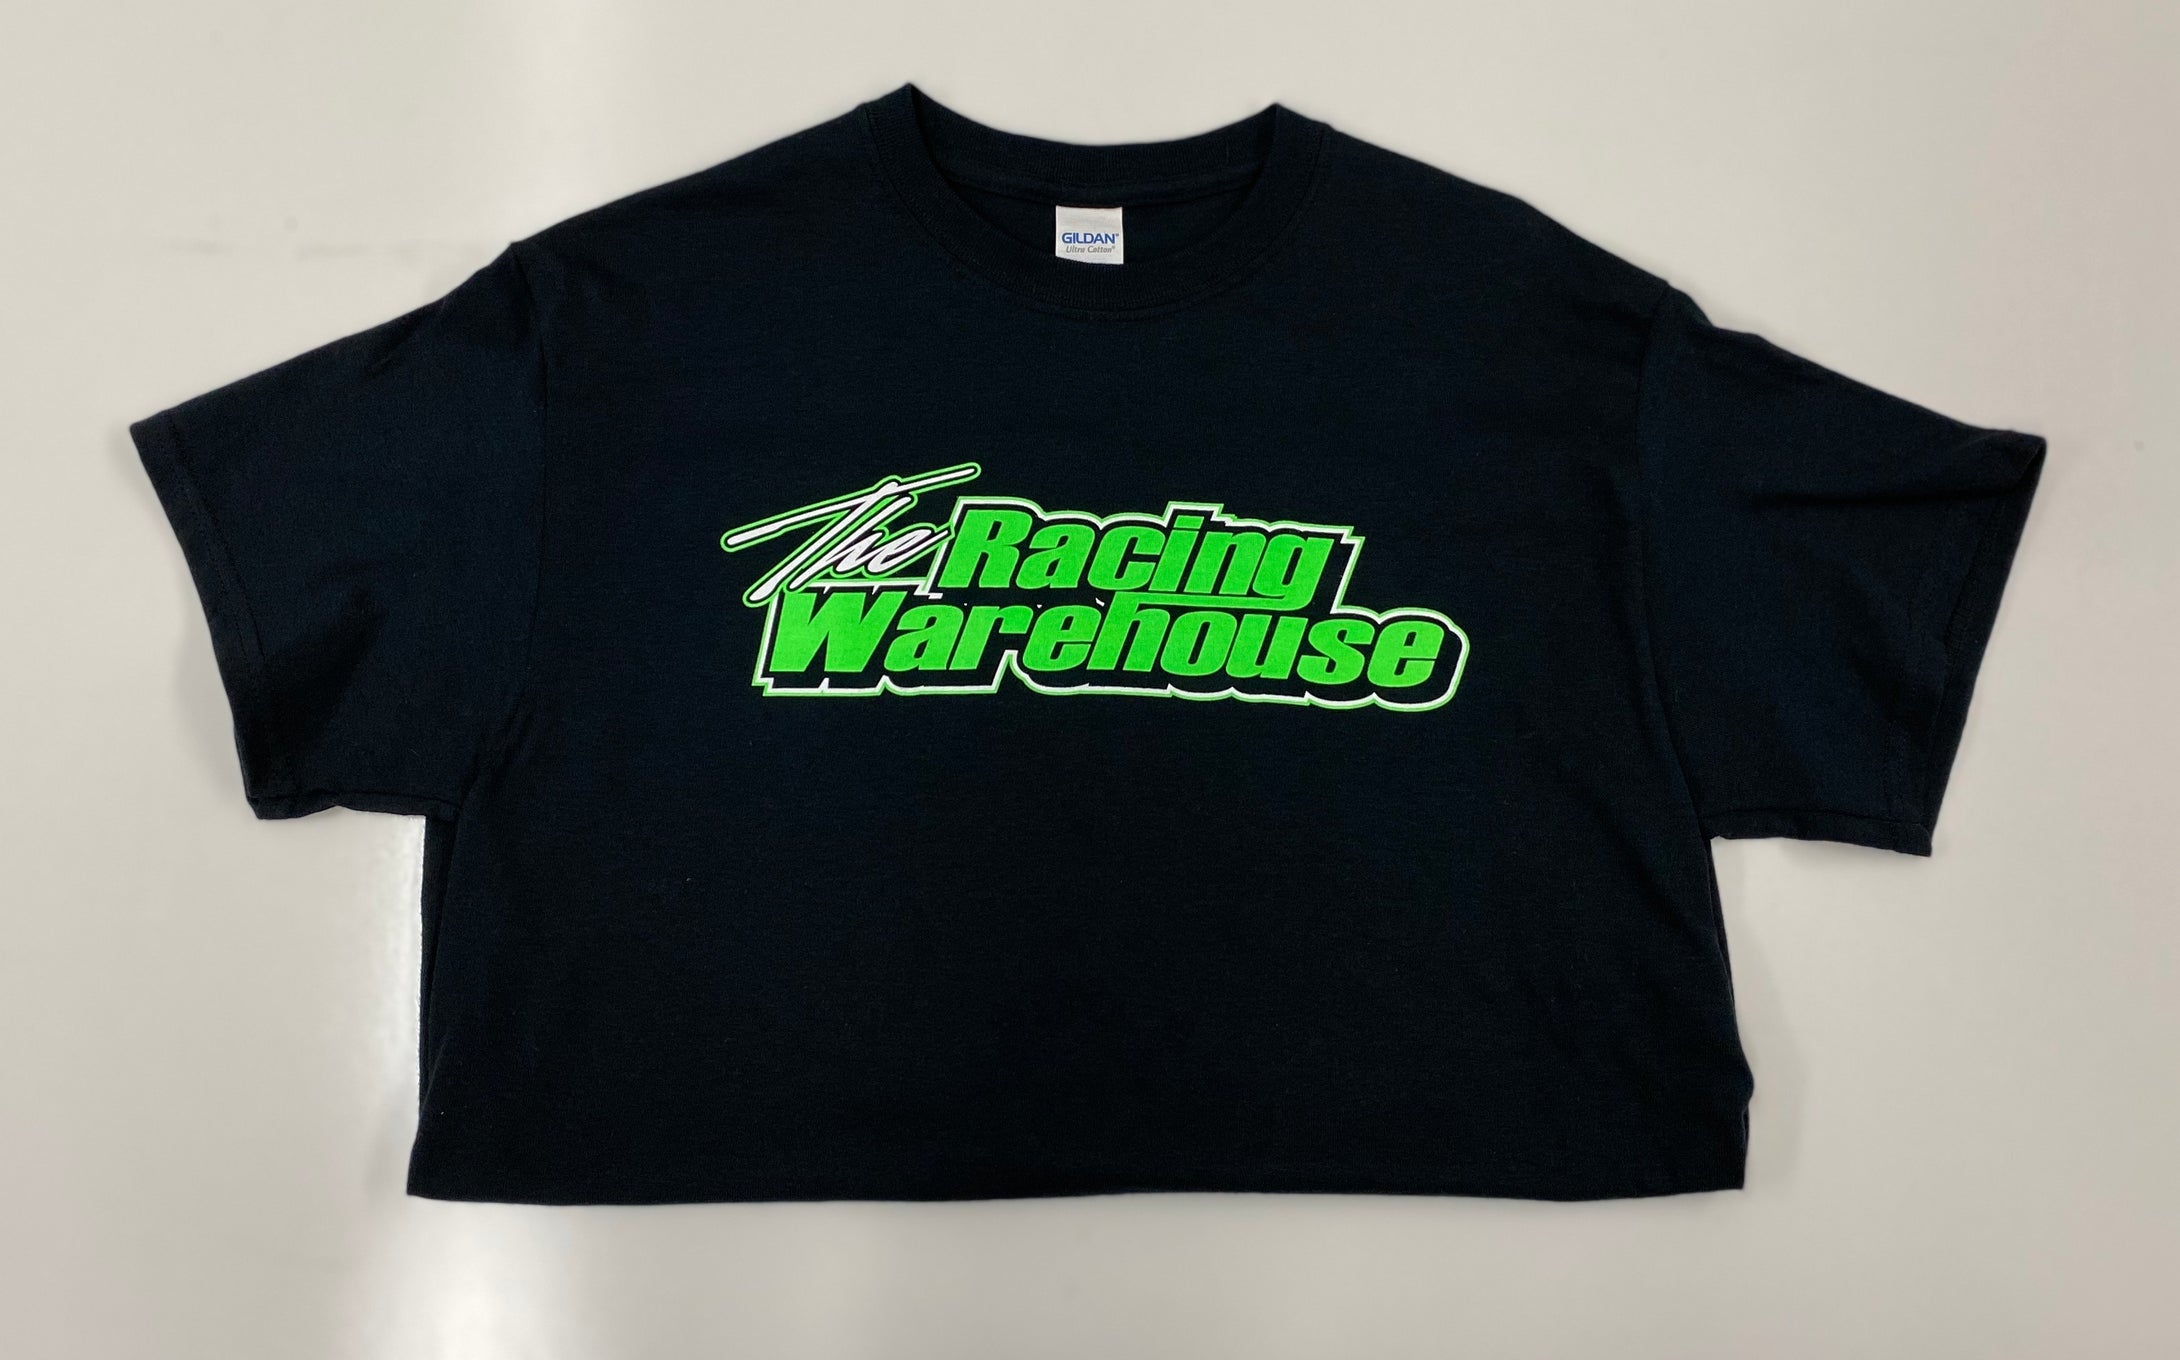 The Racing Warehouse T-shirt Original Logo